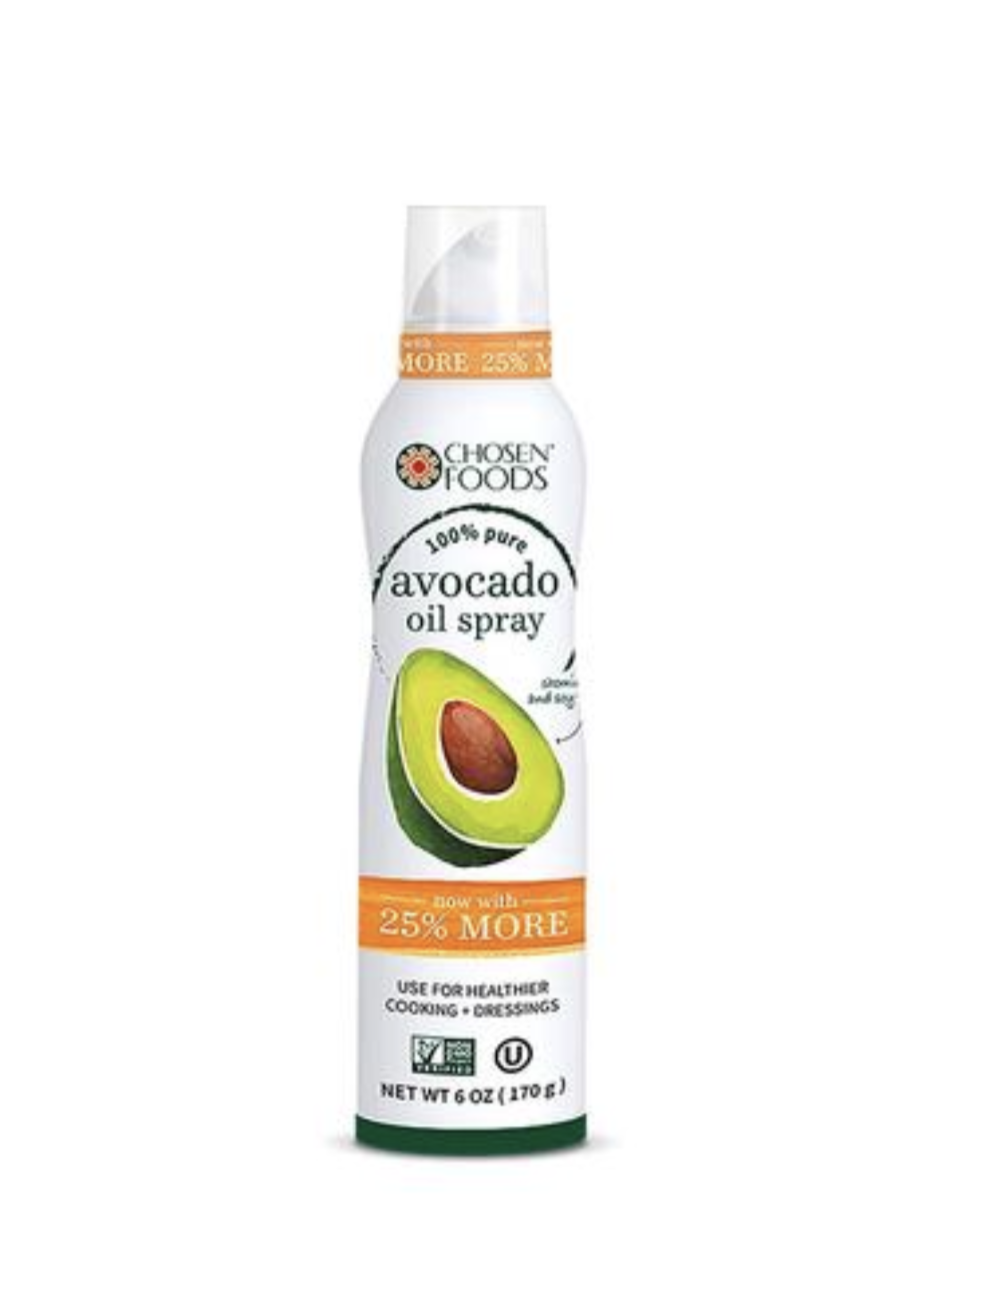 Avocado Oil Spray - Run, don't walk, to…Costco. This one was recently spotted in a two pack for a great deal. This convenient little spray is great for all your cooking and baking needs.